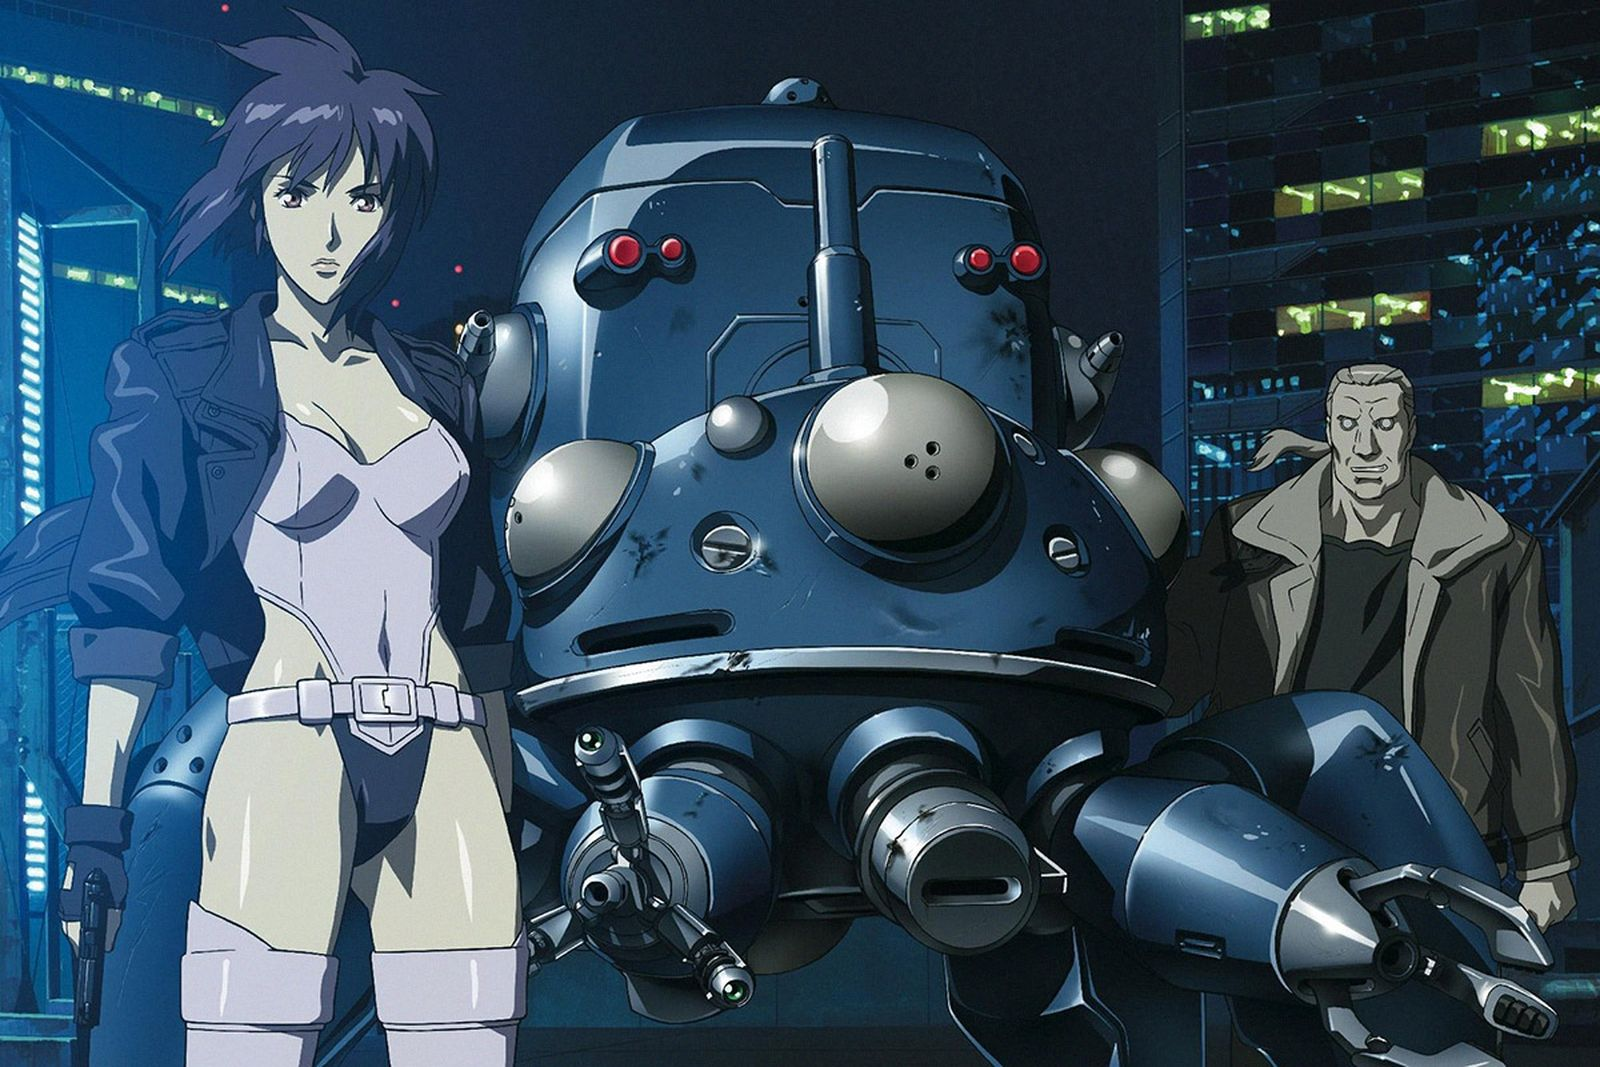 anime for beginners Ghost In The Shell Barefoot Gen Fullmetal Alchemist Millennium Actress